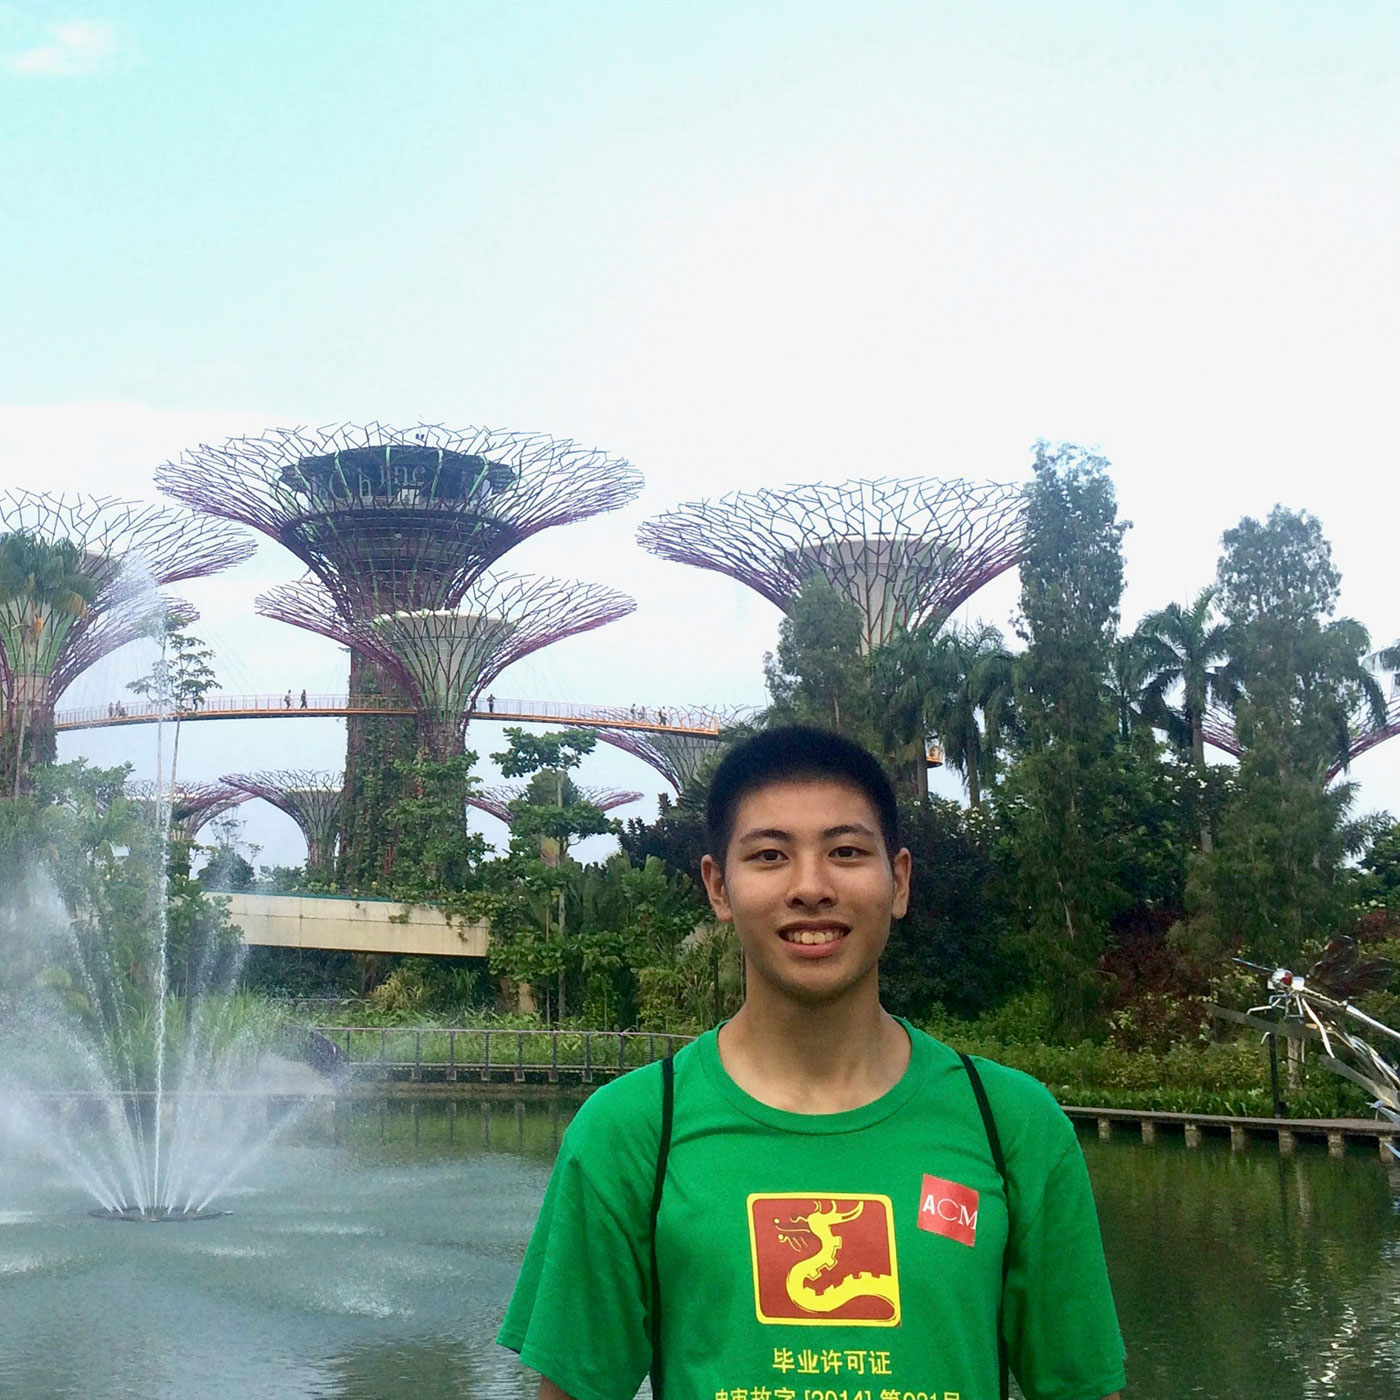 Xudong Yang, former Pre-sessional English course student